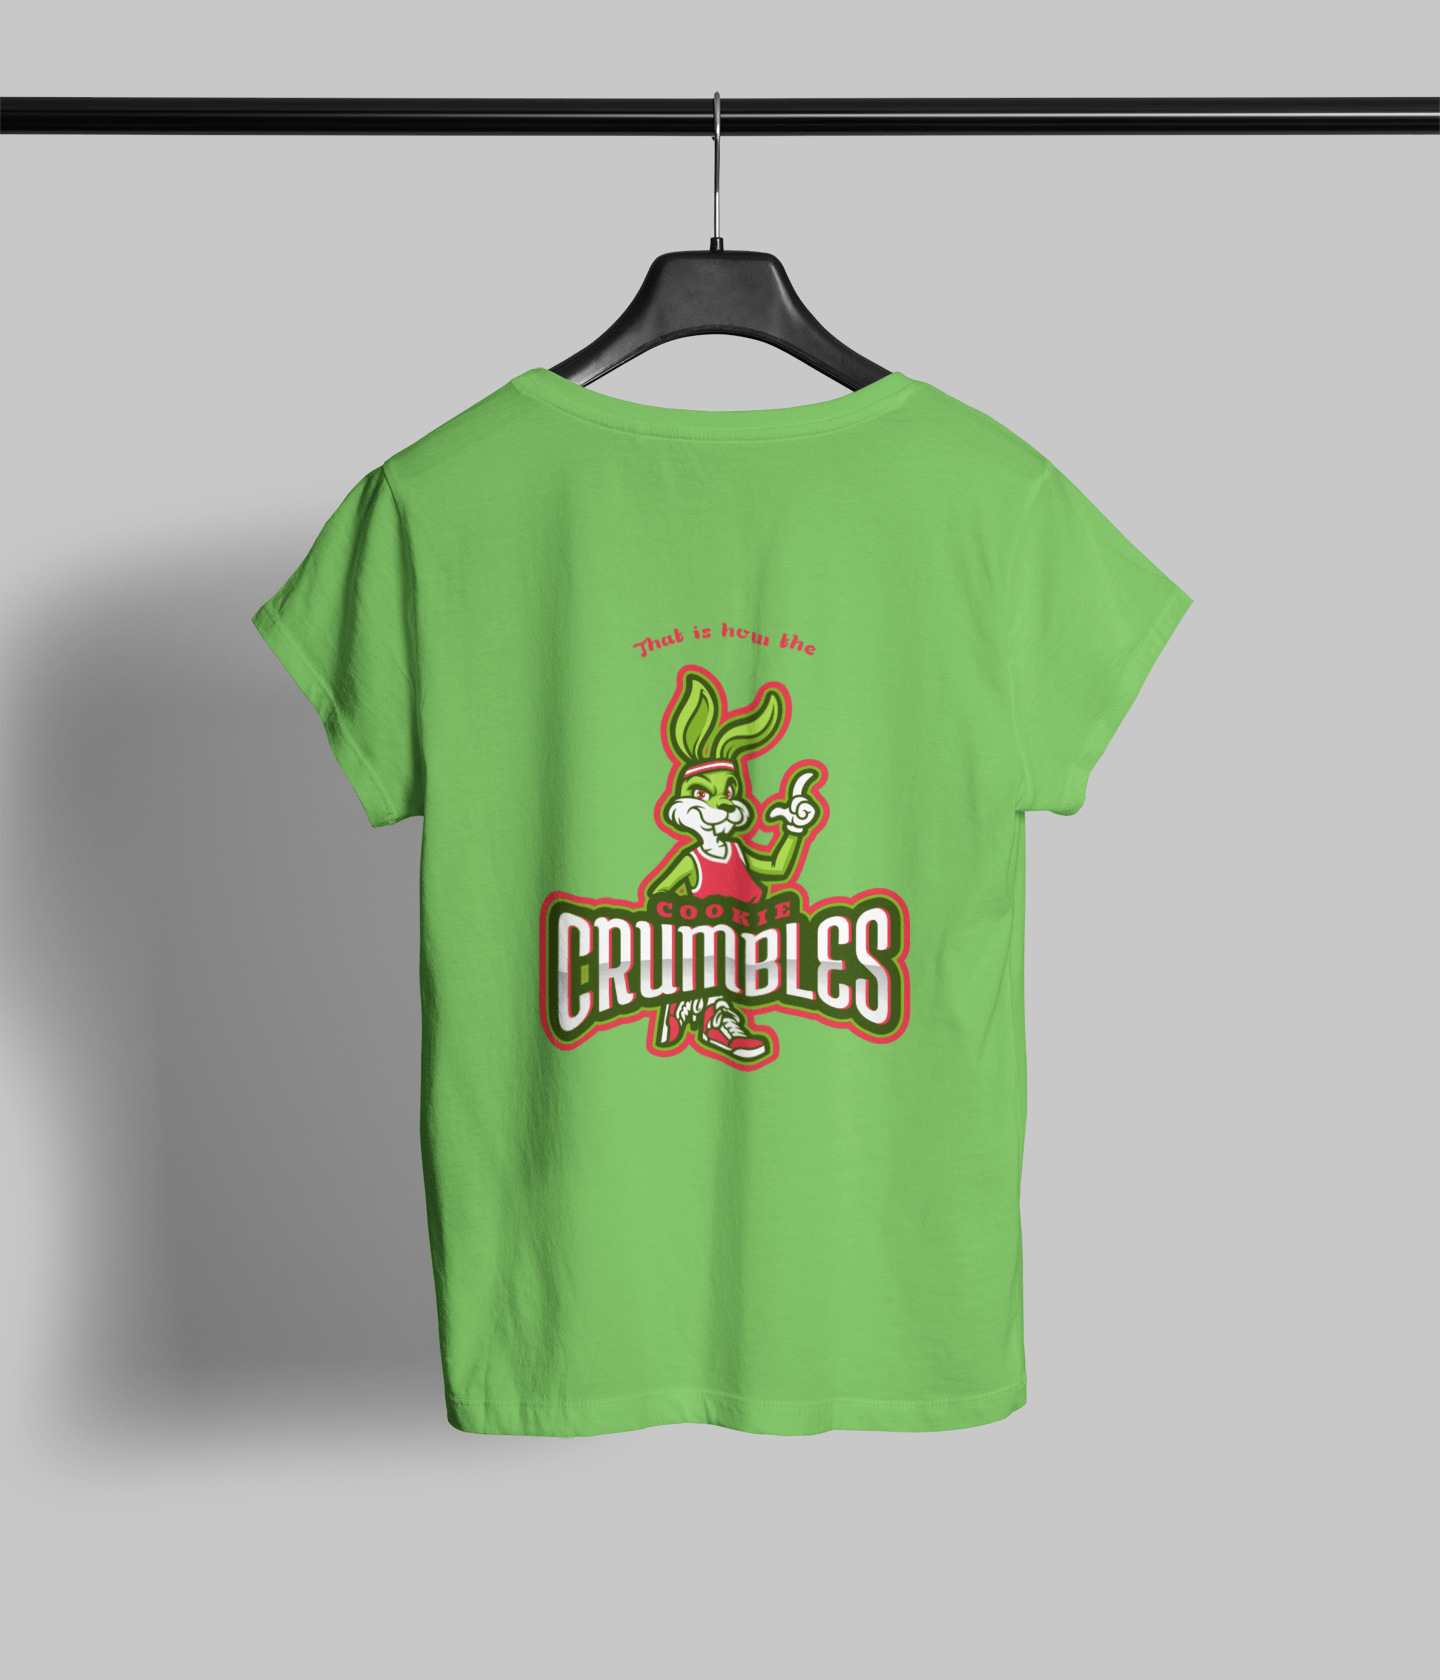 Cookie Crumbles Clothing Printrove Liril Green 1